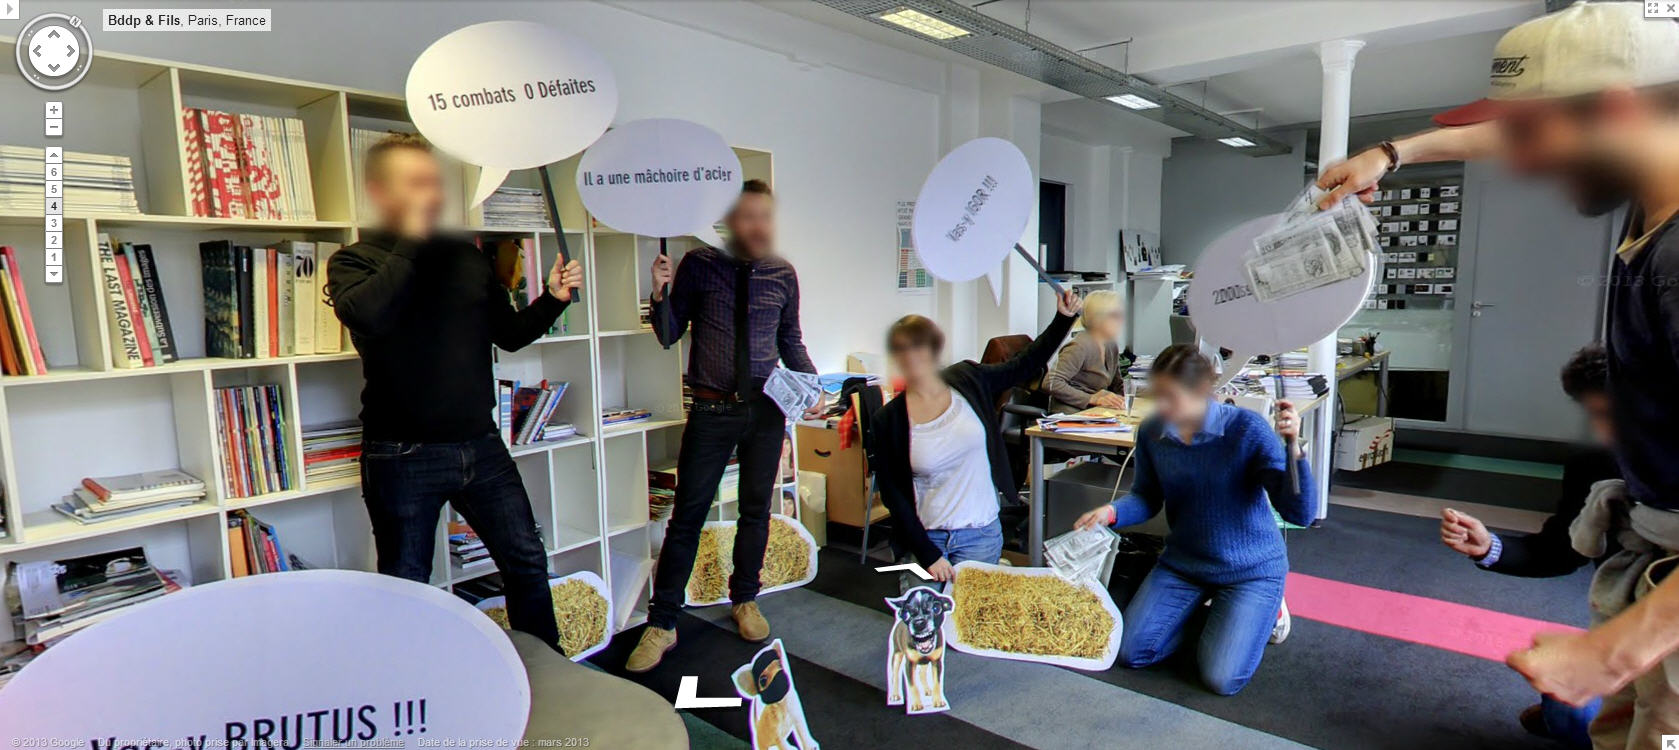 Crazy Frenchmen (and ladies) on Google Street View indoors